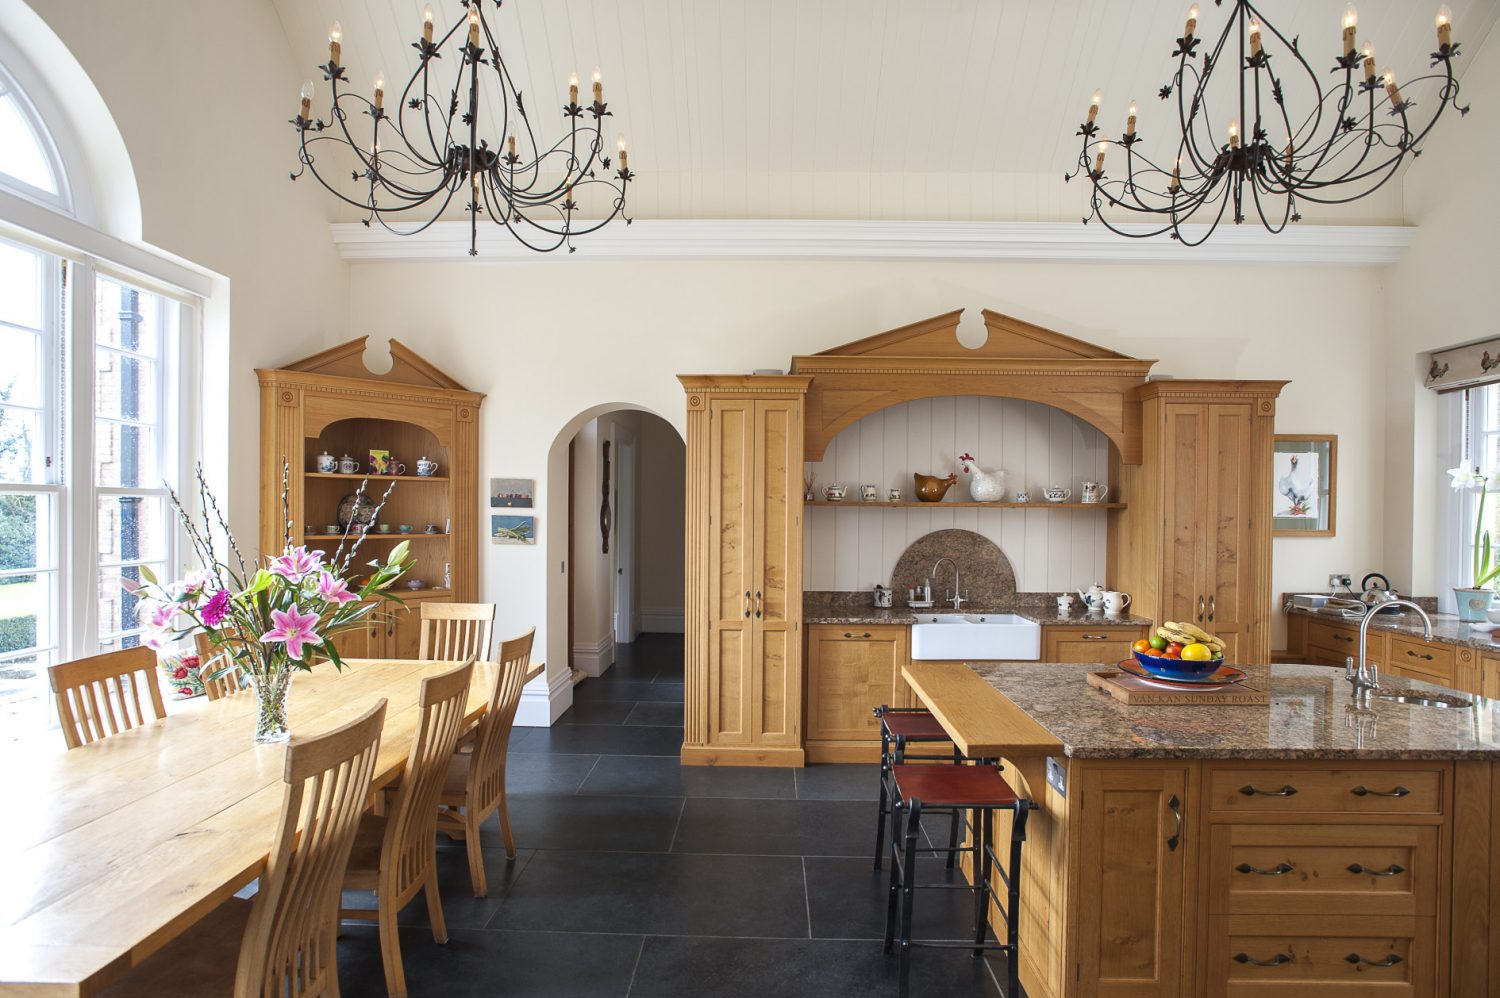 Two fabulous wrought-iron chandeliers, sourced from Illuminations in Tunbridge Wells, are a striking feature in the vast kitchen